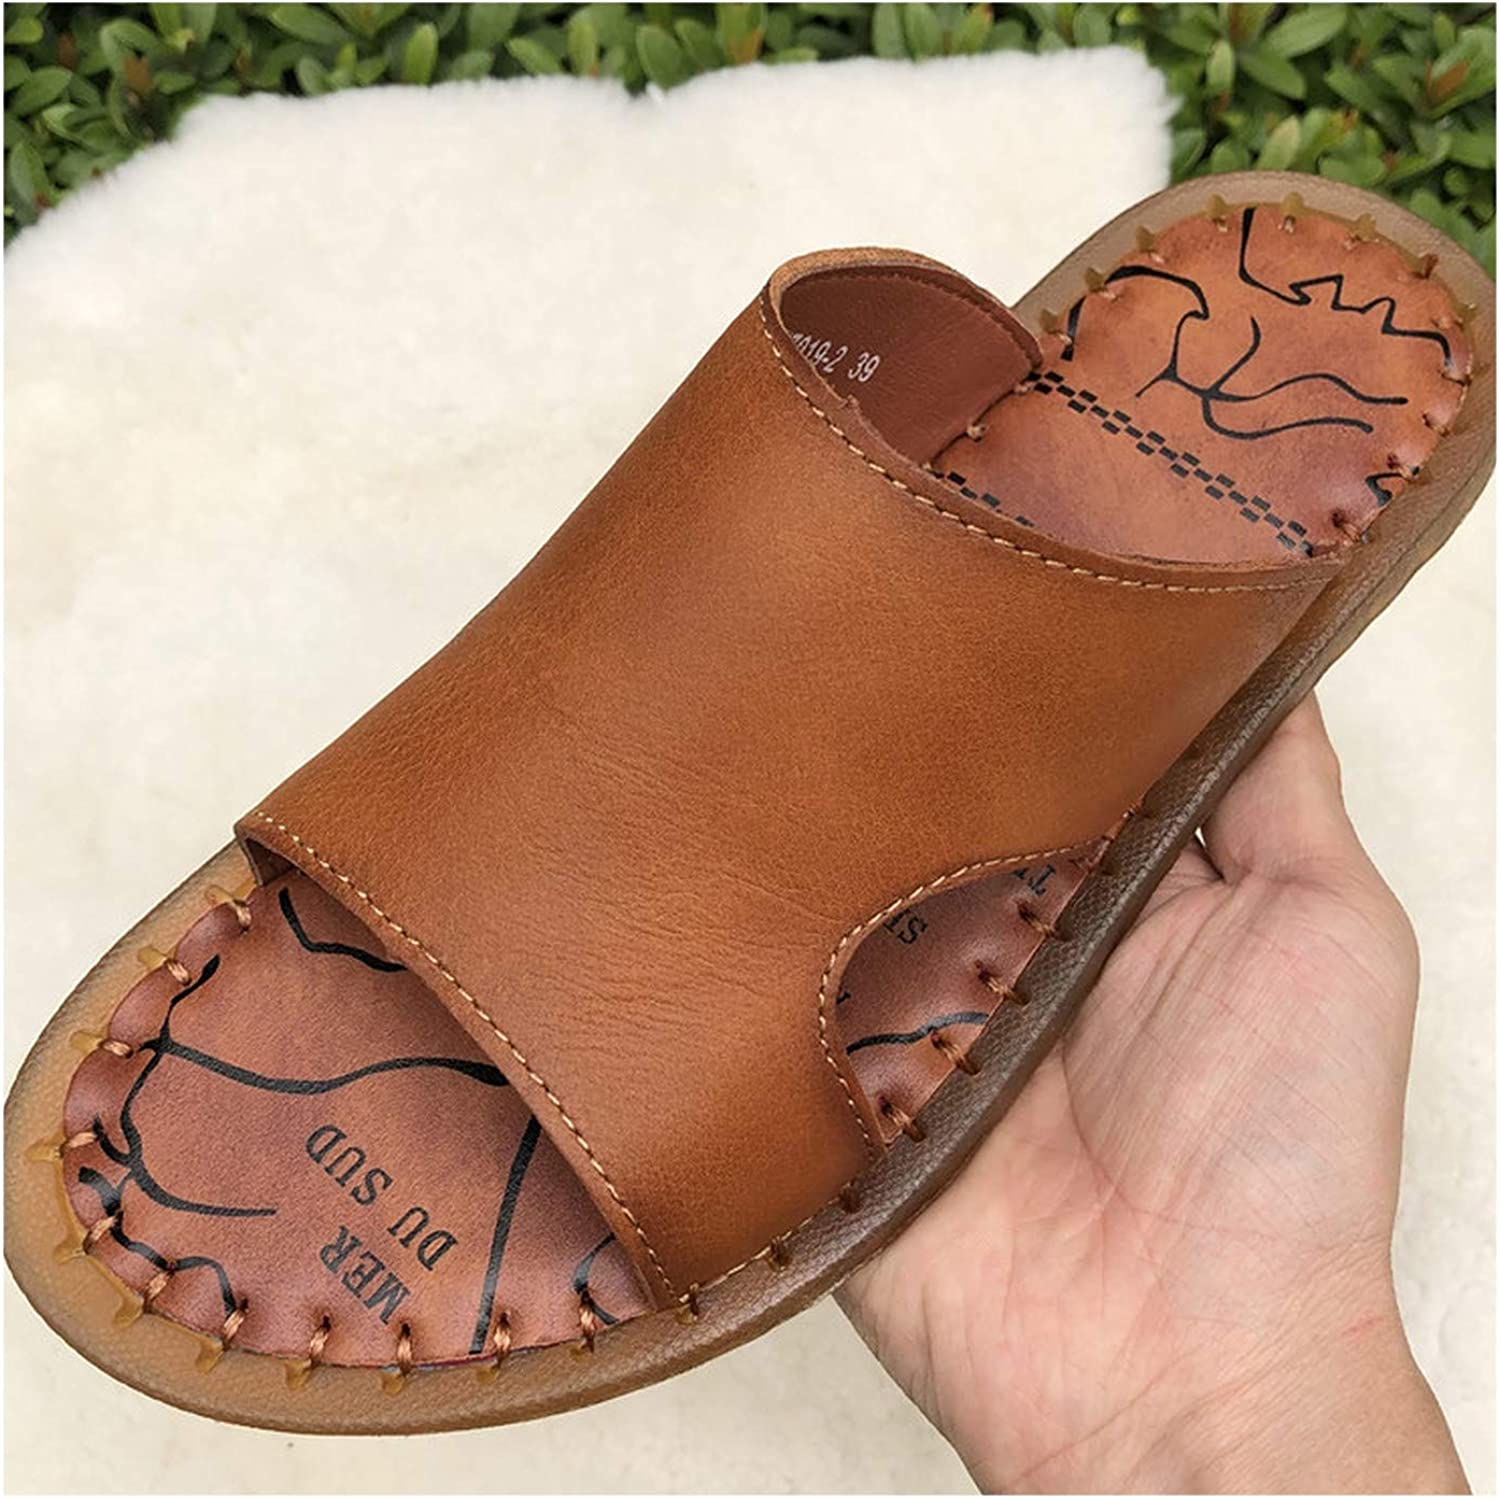 Wood-1 Summer Full Grain Leather shoes Men Casual Simple Outdoor Slippers TPR Outsole Sandals Men,Brown,7